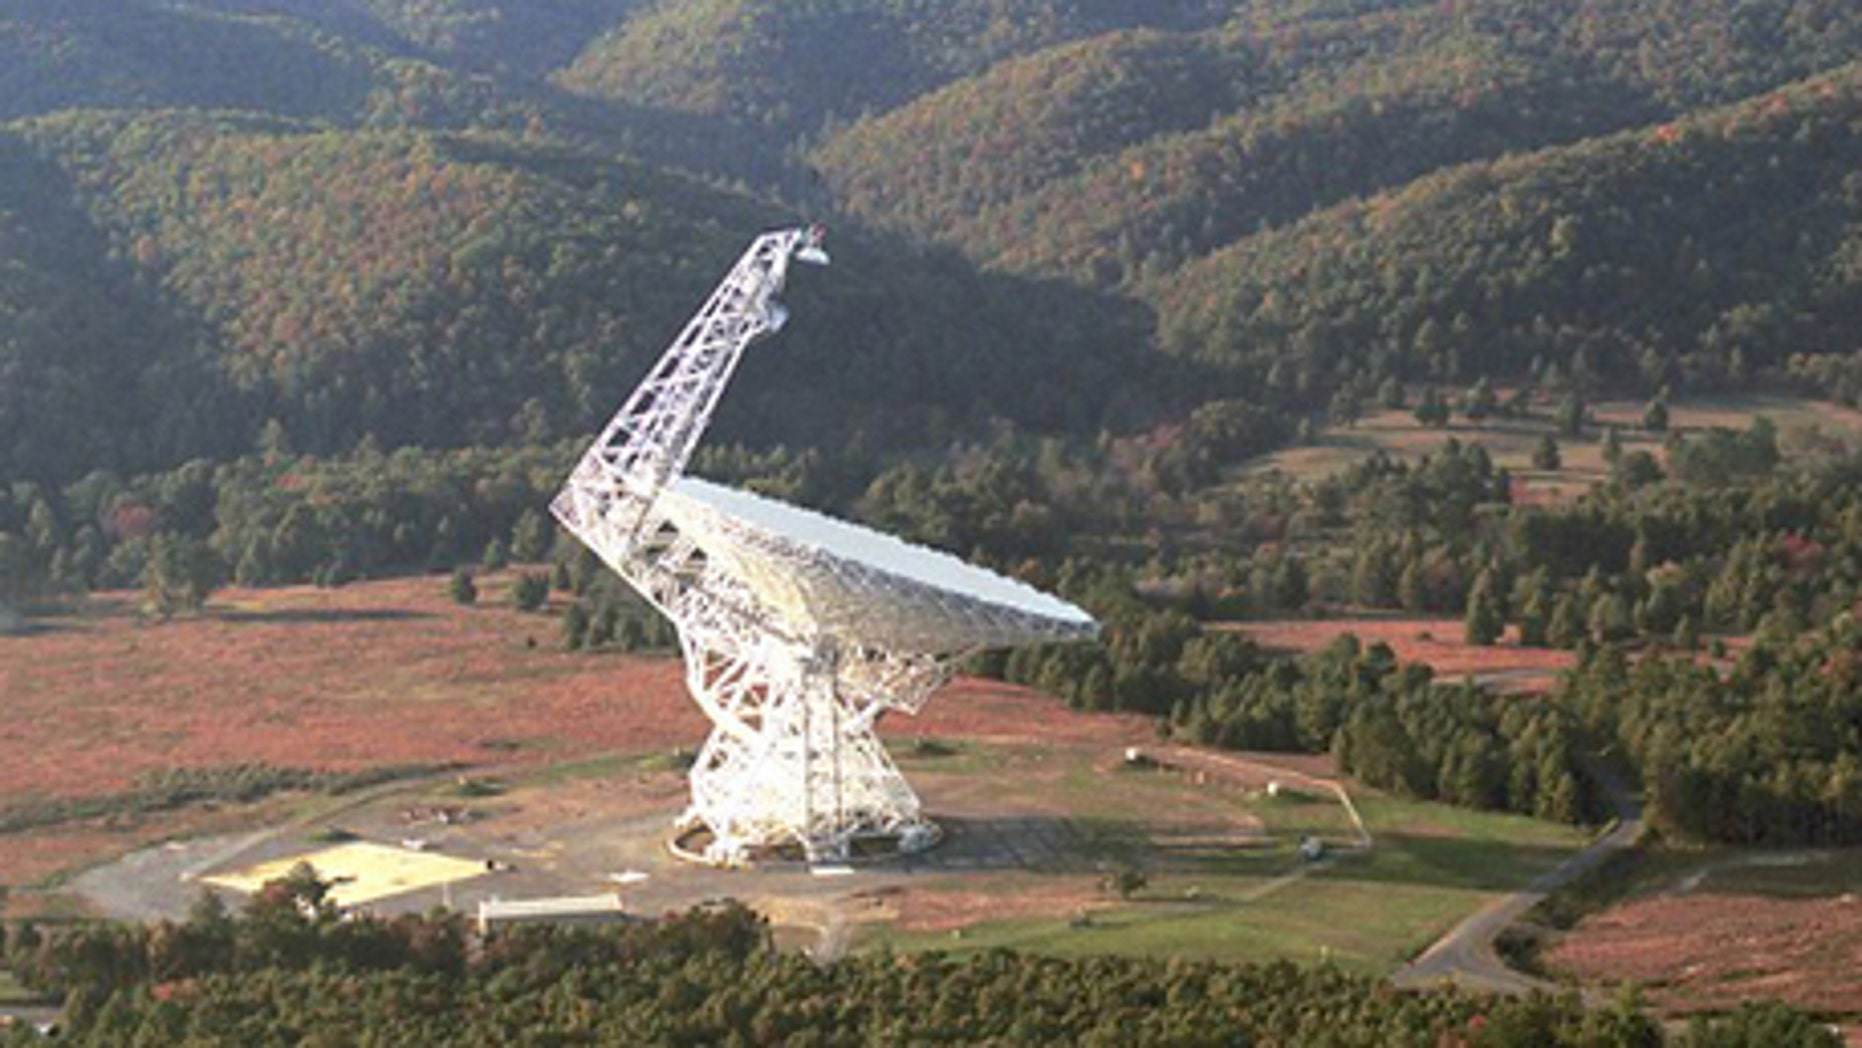 The Robert C. Byrd Green Bank Telescope in West Virginia, the largest steerable radio telescope in the world, is observing 86 planetary systems that may contain Earth-like planets in hopes of detecting signals from intelligent civilizations